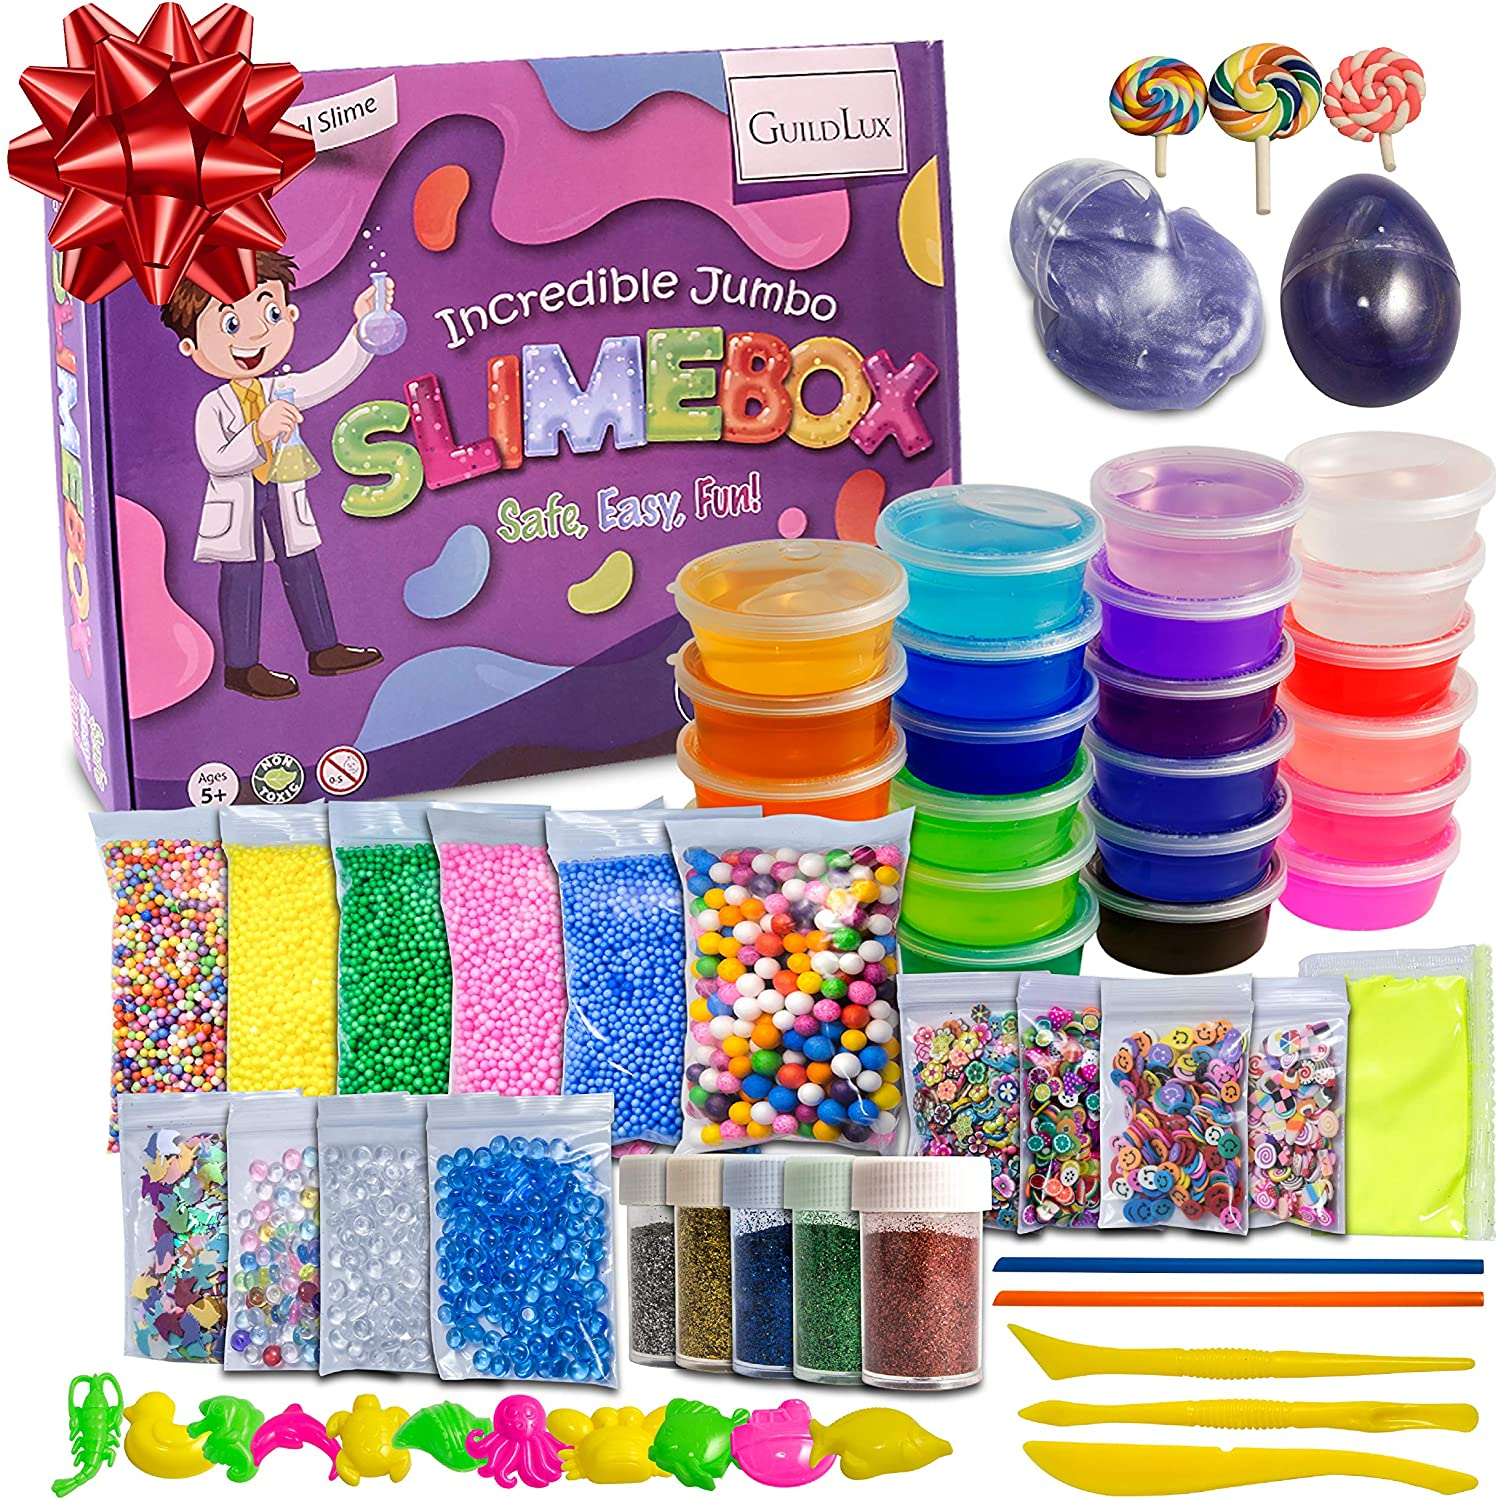 DIY 72pc Crystal Clear Slime Kit | 24 Colors Slime, Foam Beads, Fruit Slices, Lollipops, Unicorn, Glow in The Dark Powder, Slime Eggs | Complete Supplies & Glitter Accessories for Boys & Girls